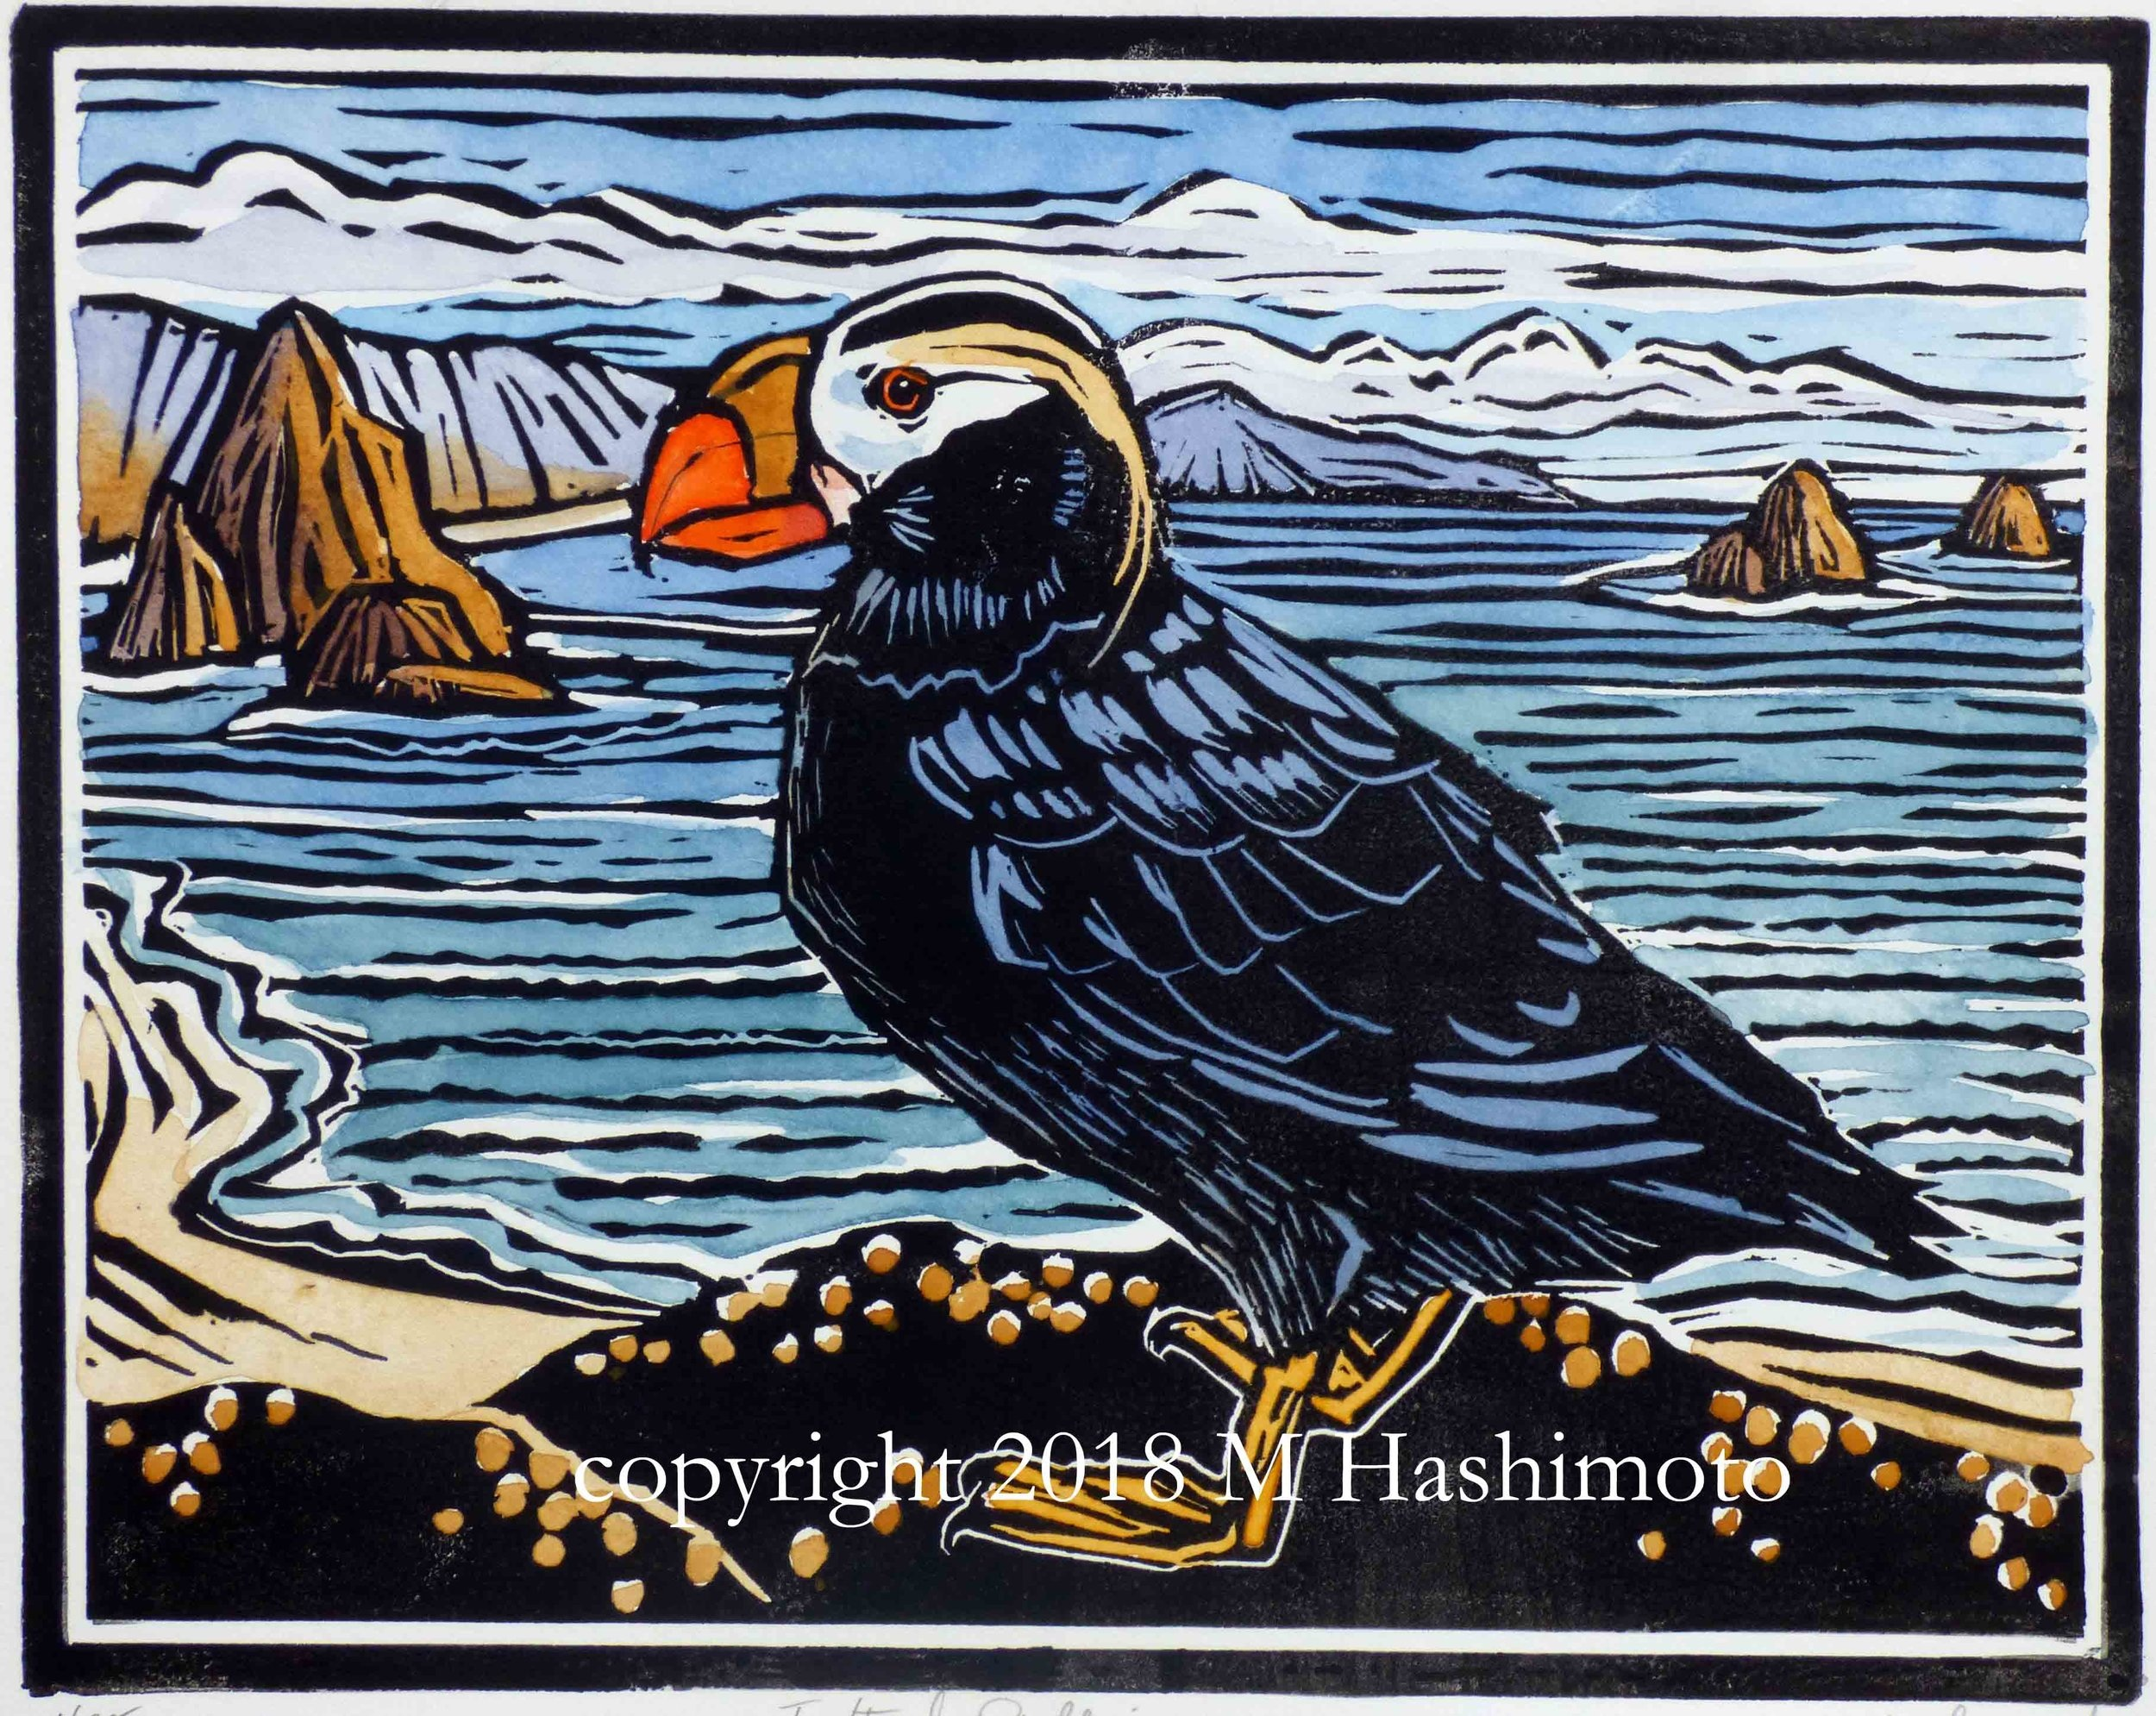 Tufted+Puffin+2+for+web+copyright.jpg